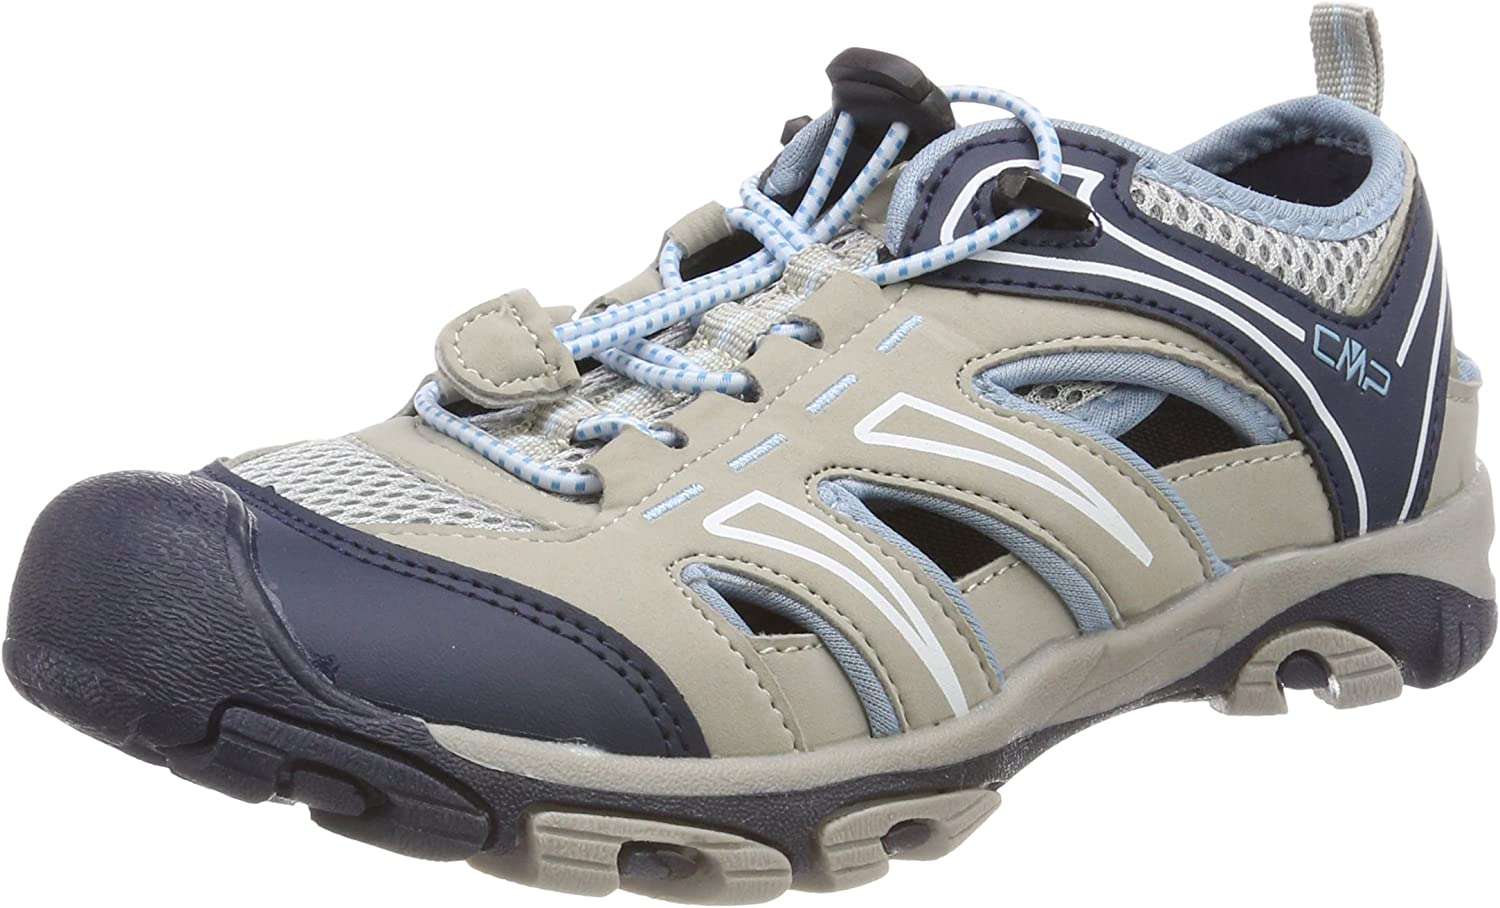 CMP Women's Low Trekking and Shoes Sandals Walking Cash special It is very popular price Hiking